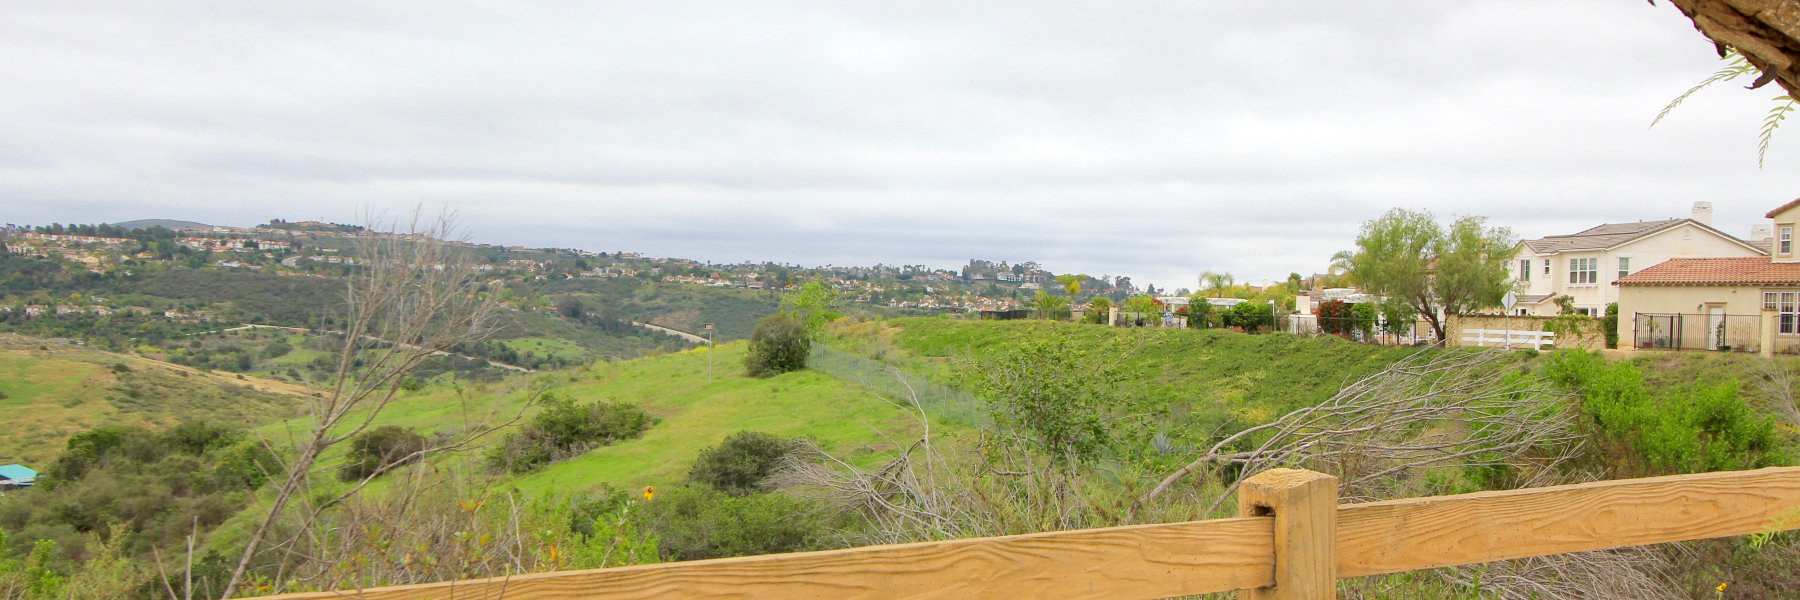 Bressi Ranch is a community of homes in Carlsbad California